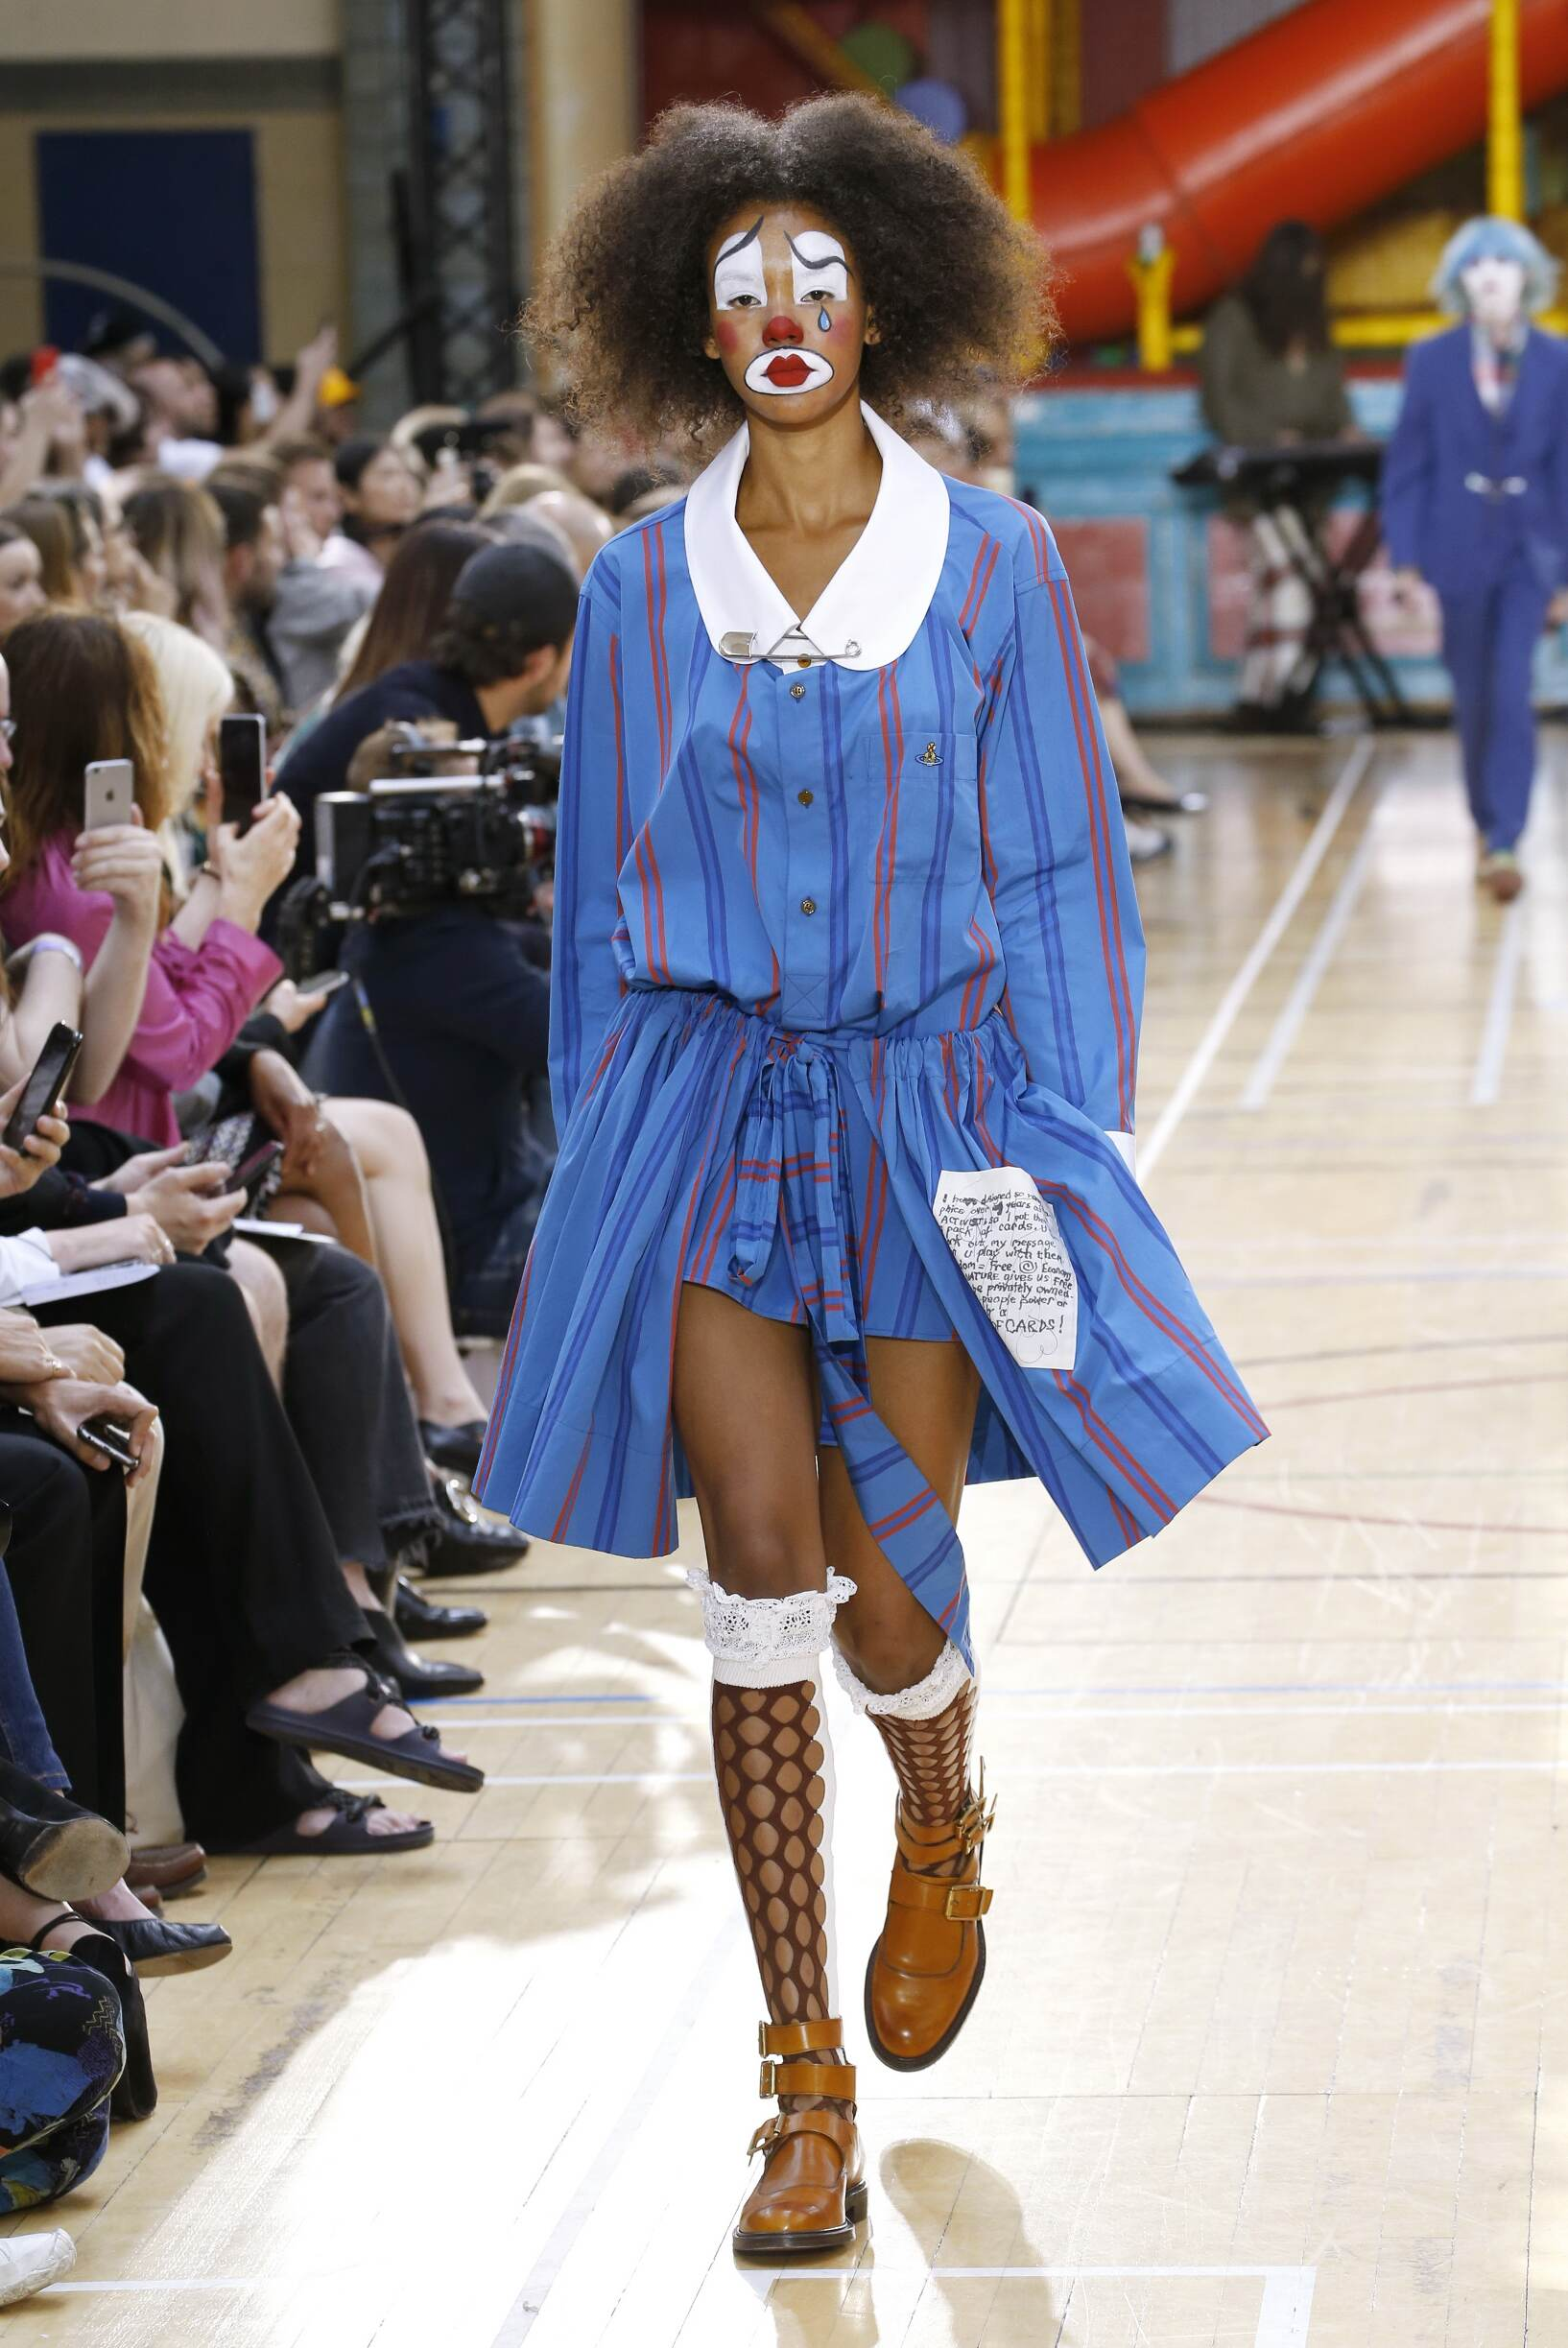 Alberta Ferretti Vivienne Westwood Spring Summer 2017-18 Collection | The